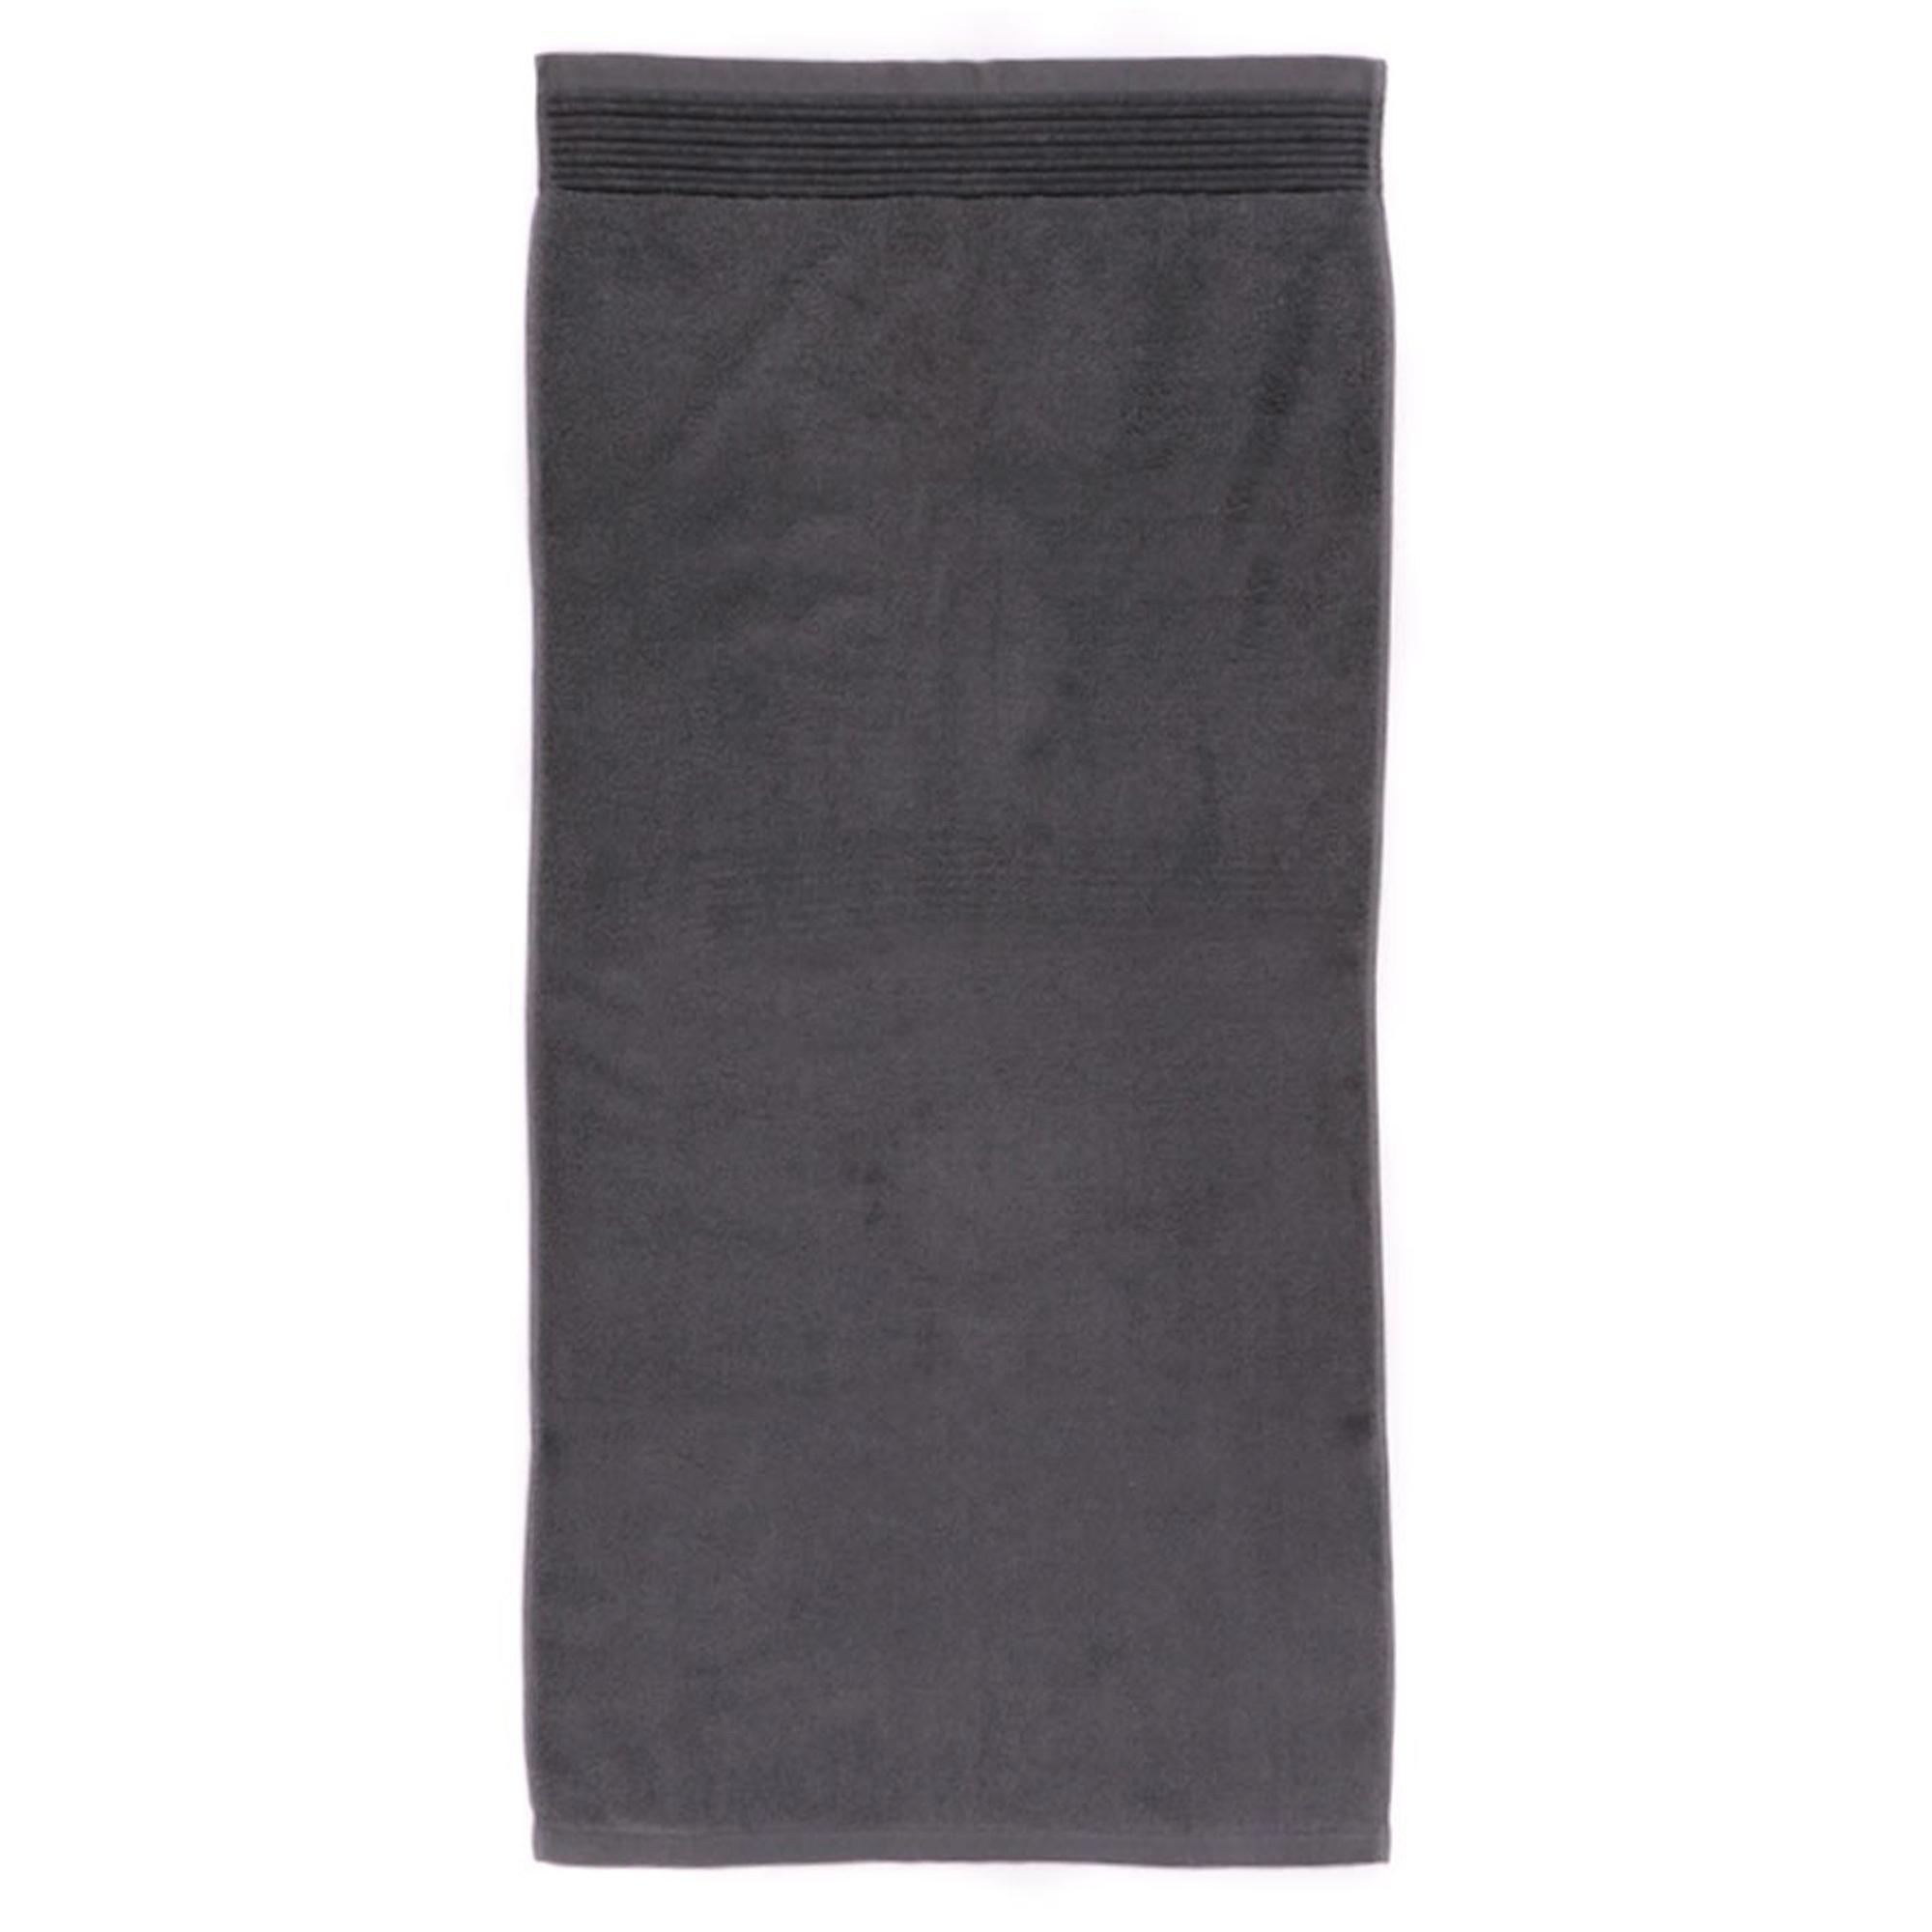 drap de bain 100x150 juliet anthracite 520g m2 ebay. Black Bedroom Furniture Sets. Home Design Ideas